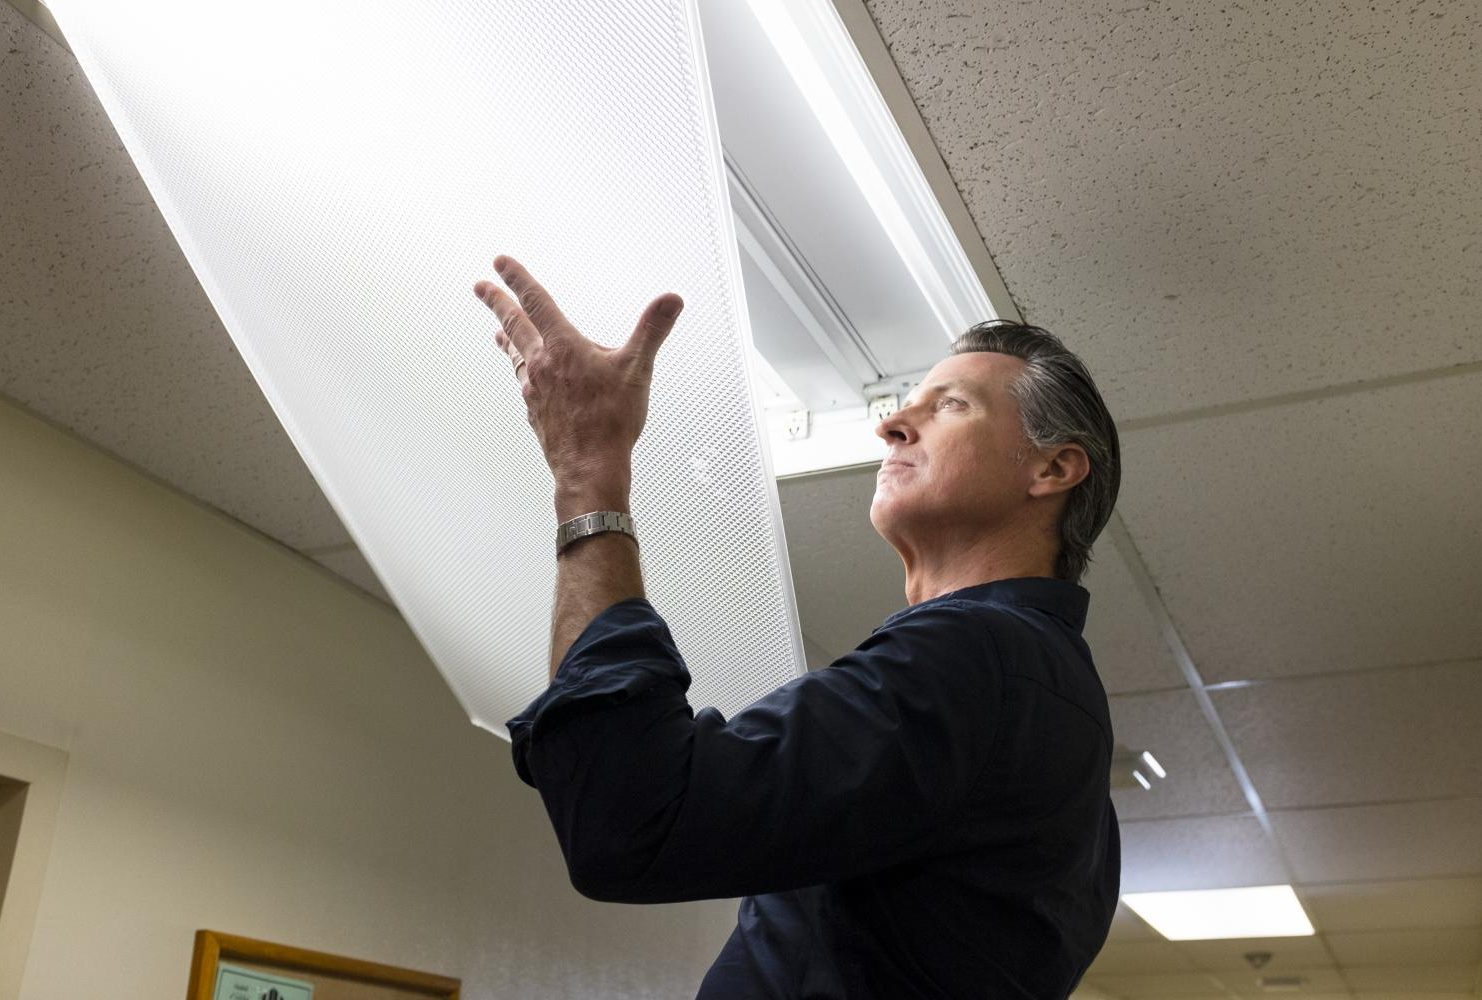 Gavin Newsom reattaches a light cover in Davies Hall at American River College after replacing two flourescant bulbs. While replacing the plastic cover Newsom accidentally cracked one corner. (Photo by Patrick Hyun Wilson)